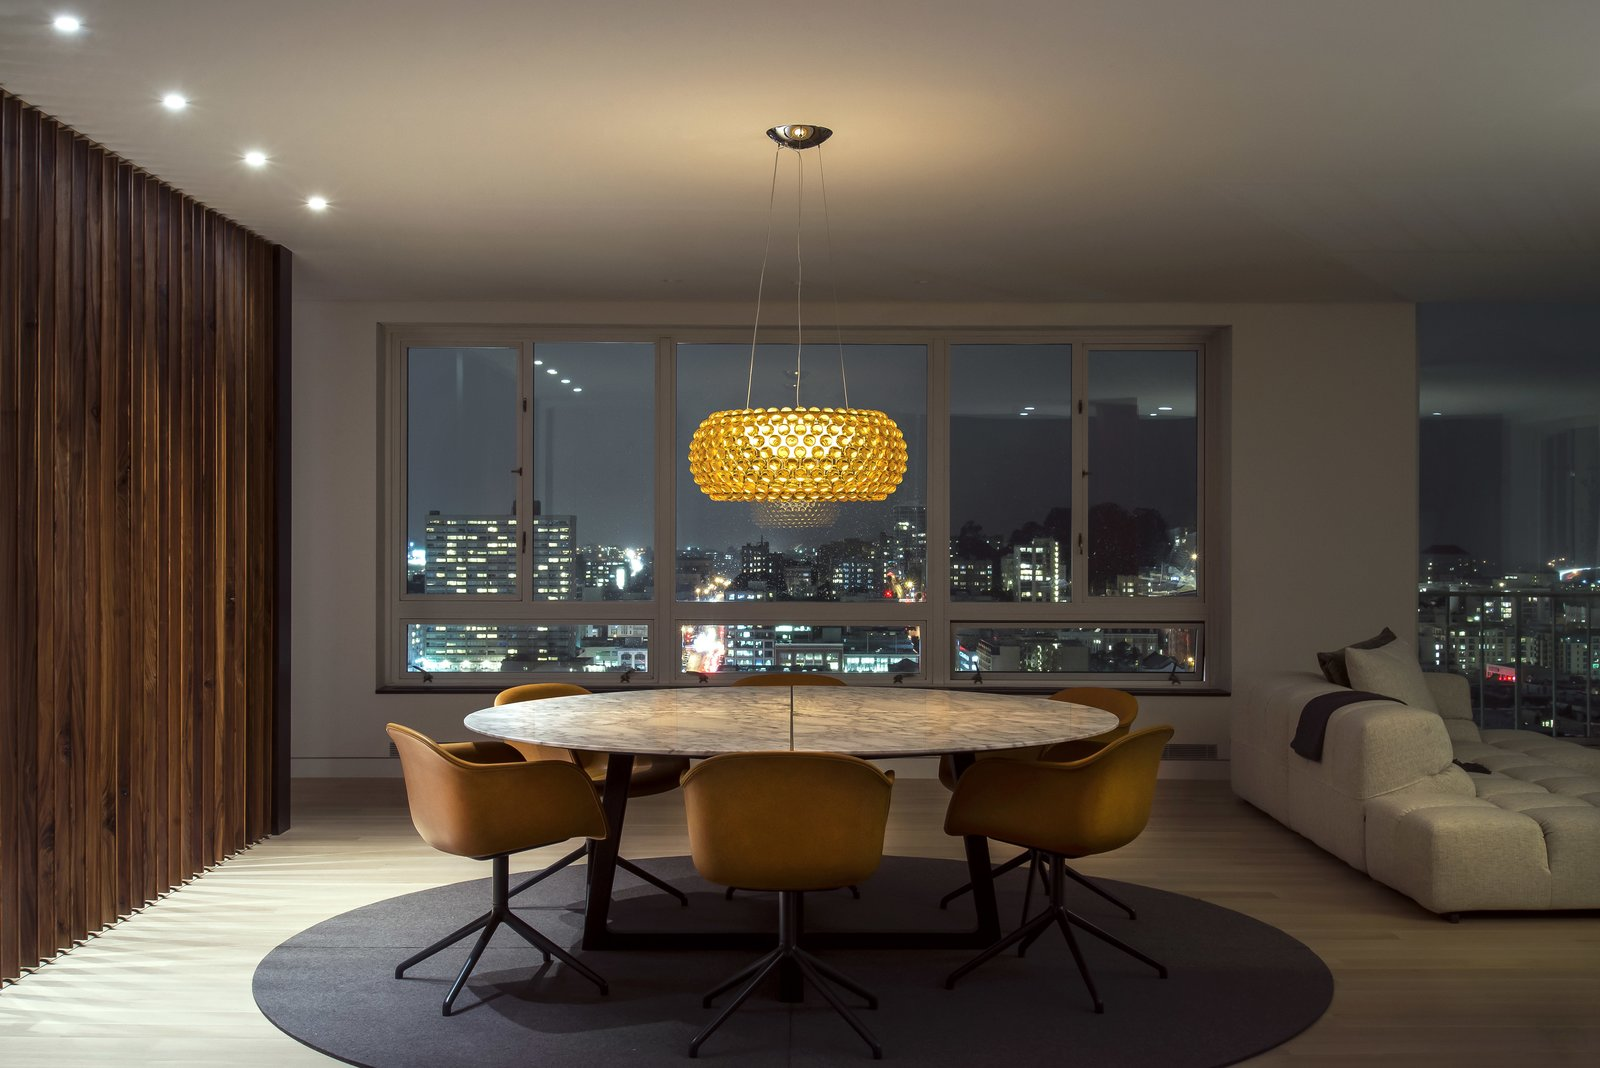 Dining Room - Night City View